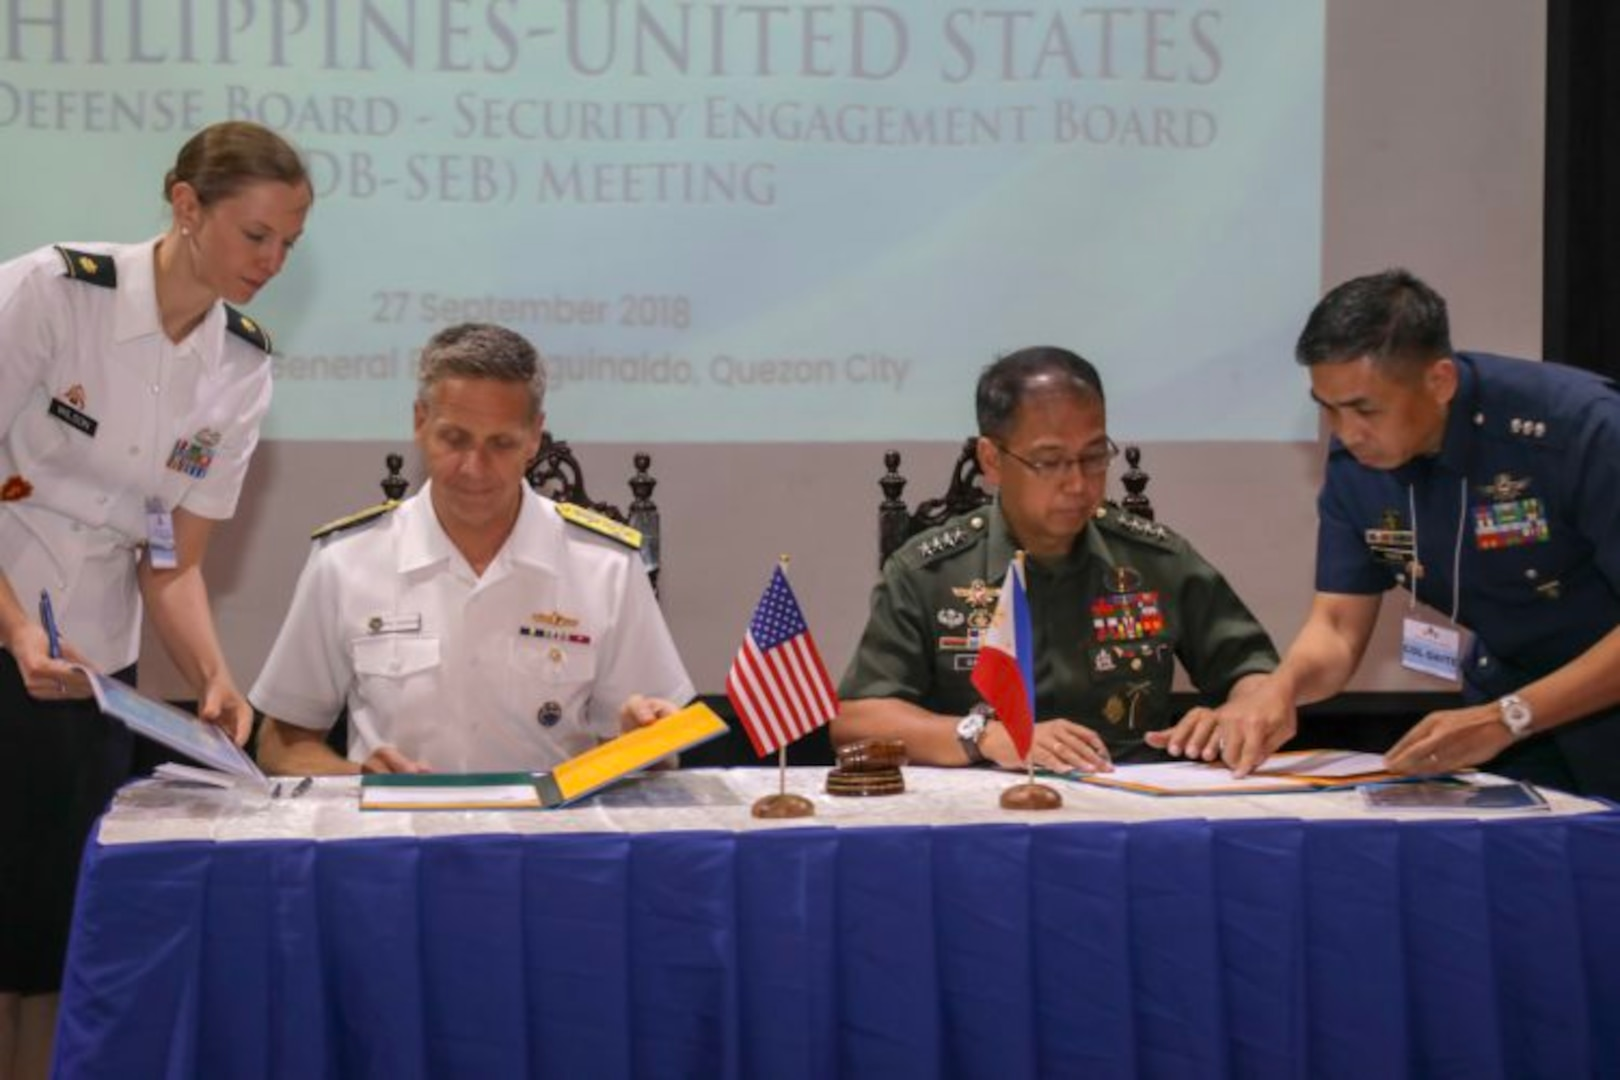 Annual Mutual Defense Board and Security Engagement Board Reinforces U.S.-Philippine Alliance